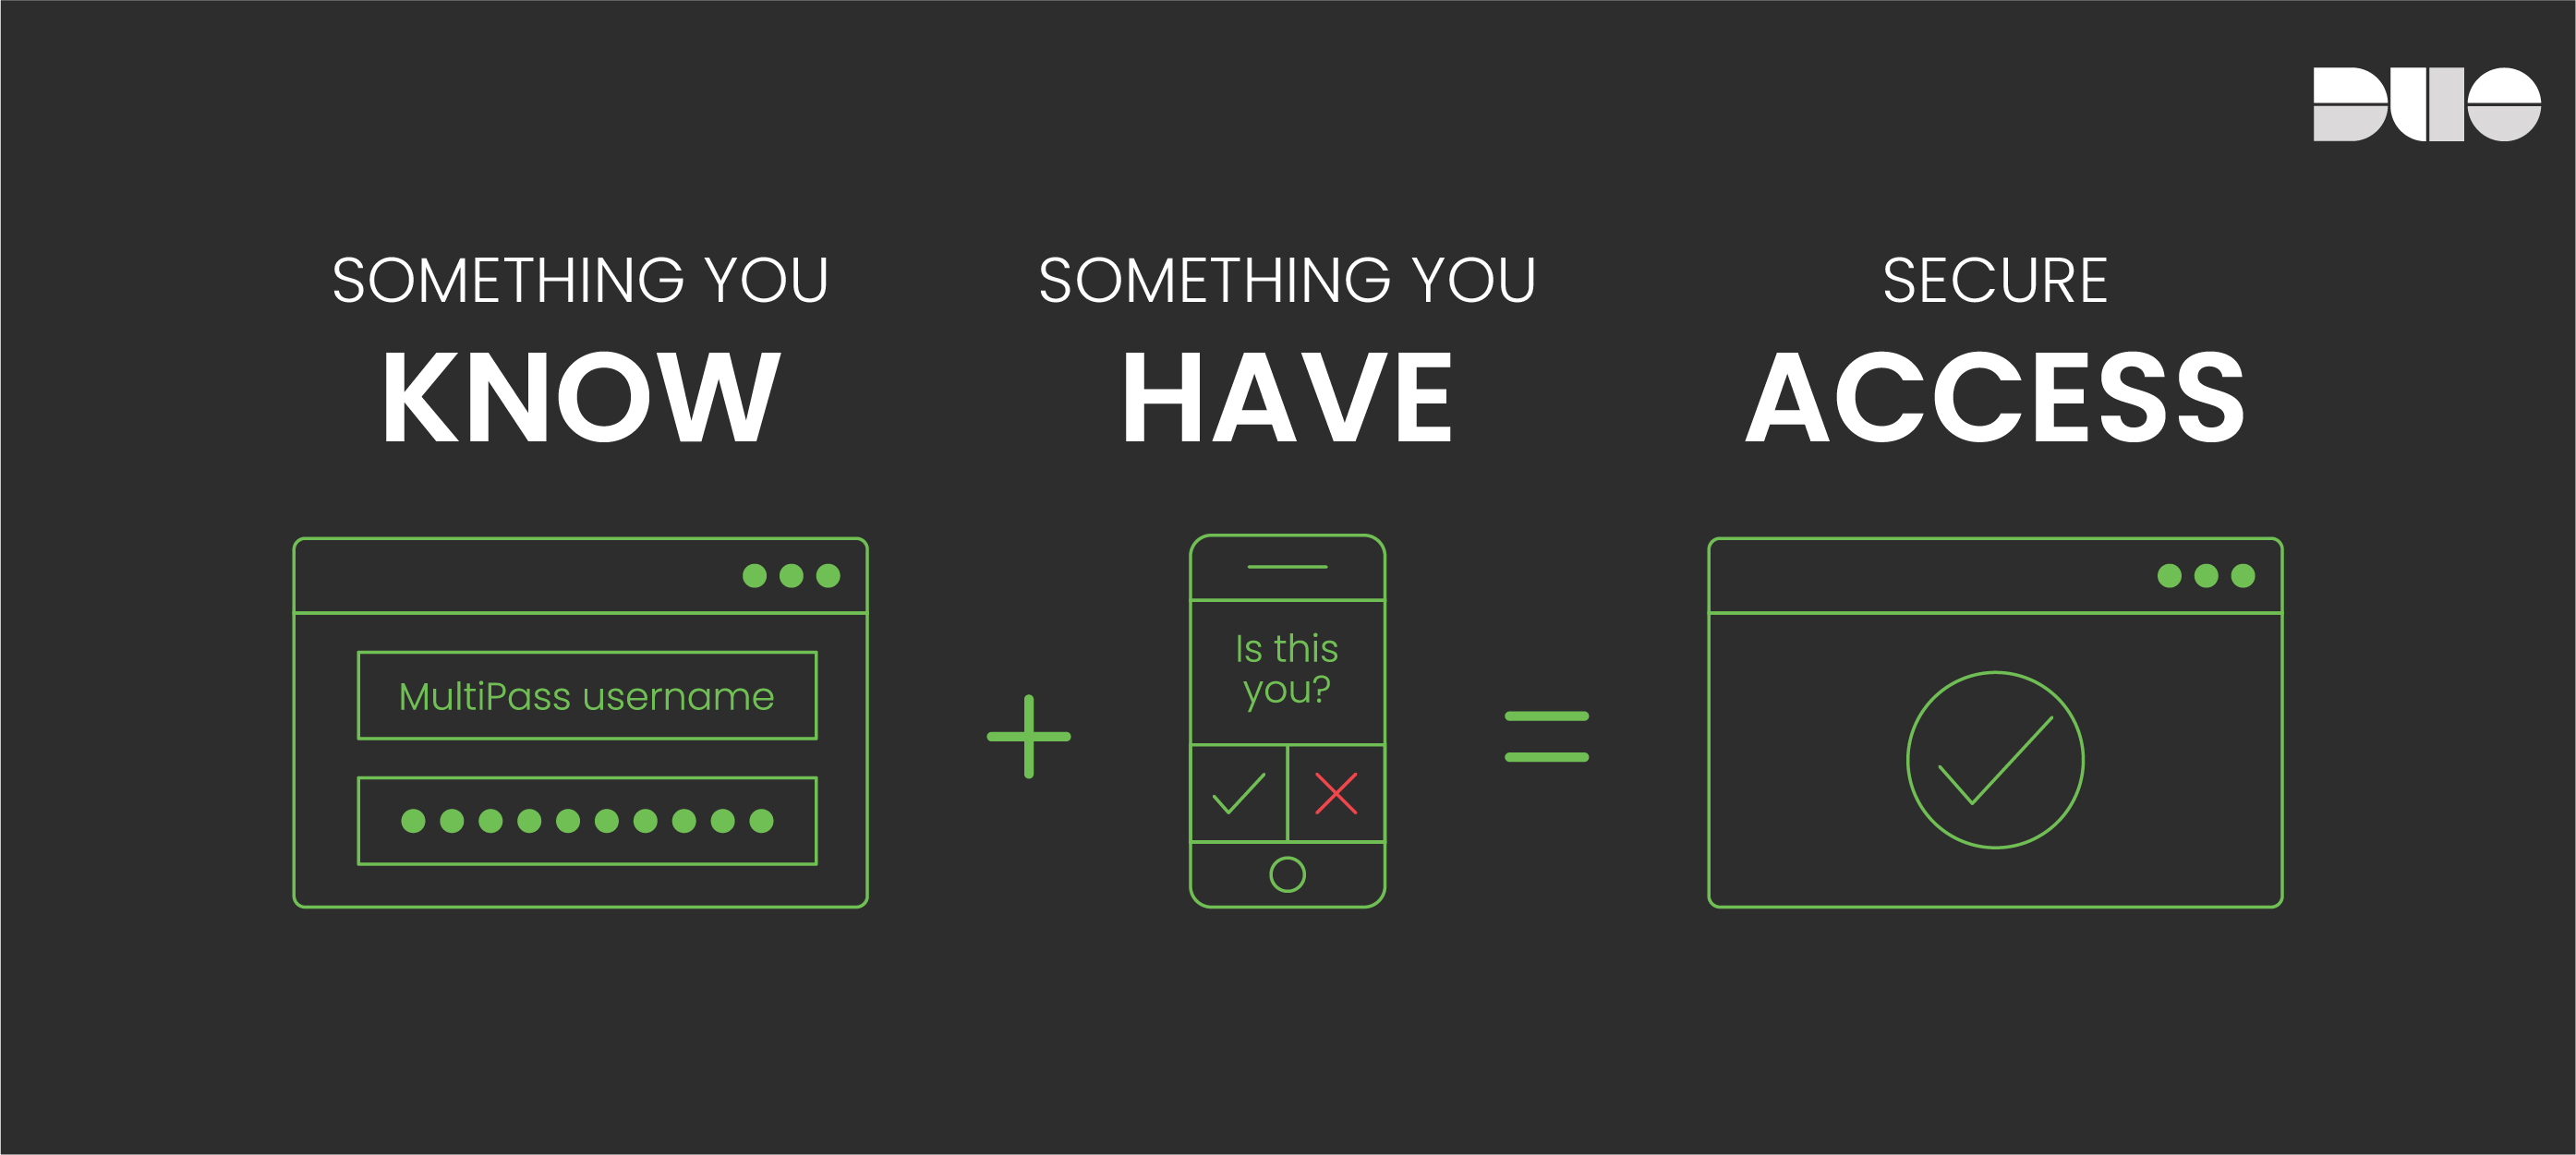 Graphic: Something You Know + Something You Have = Secure Access